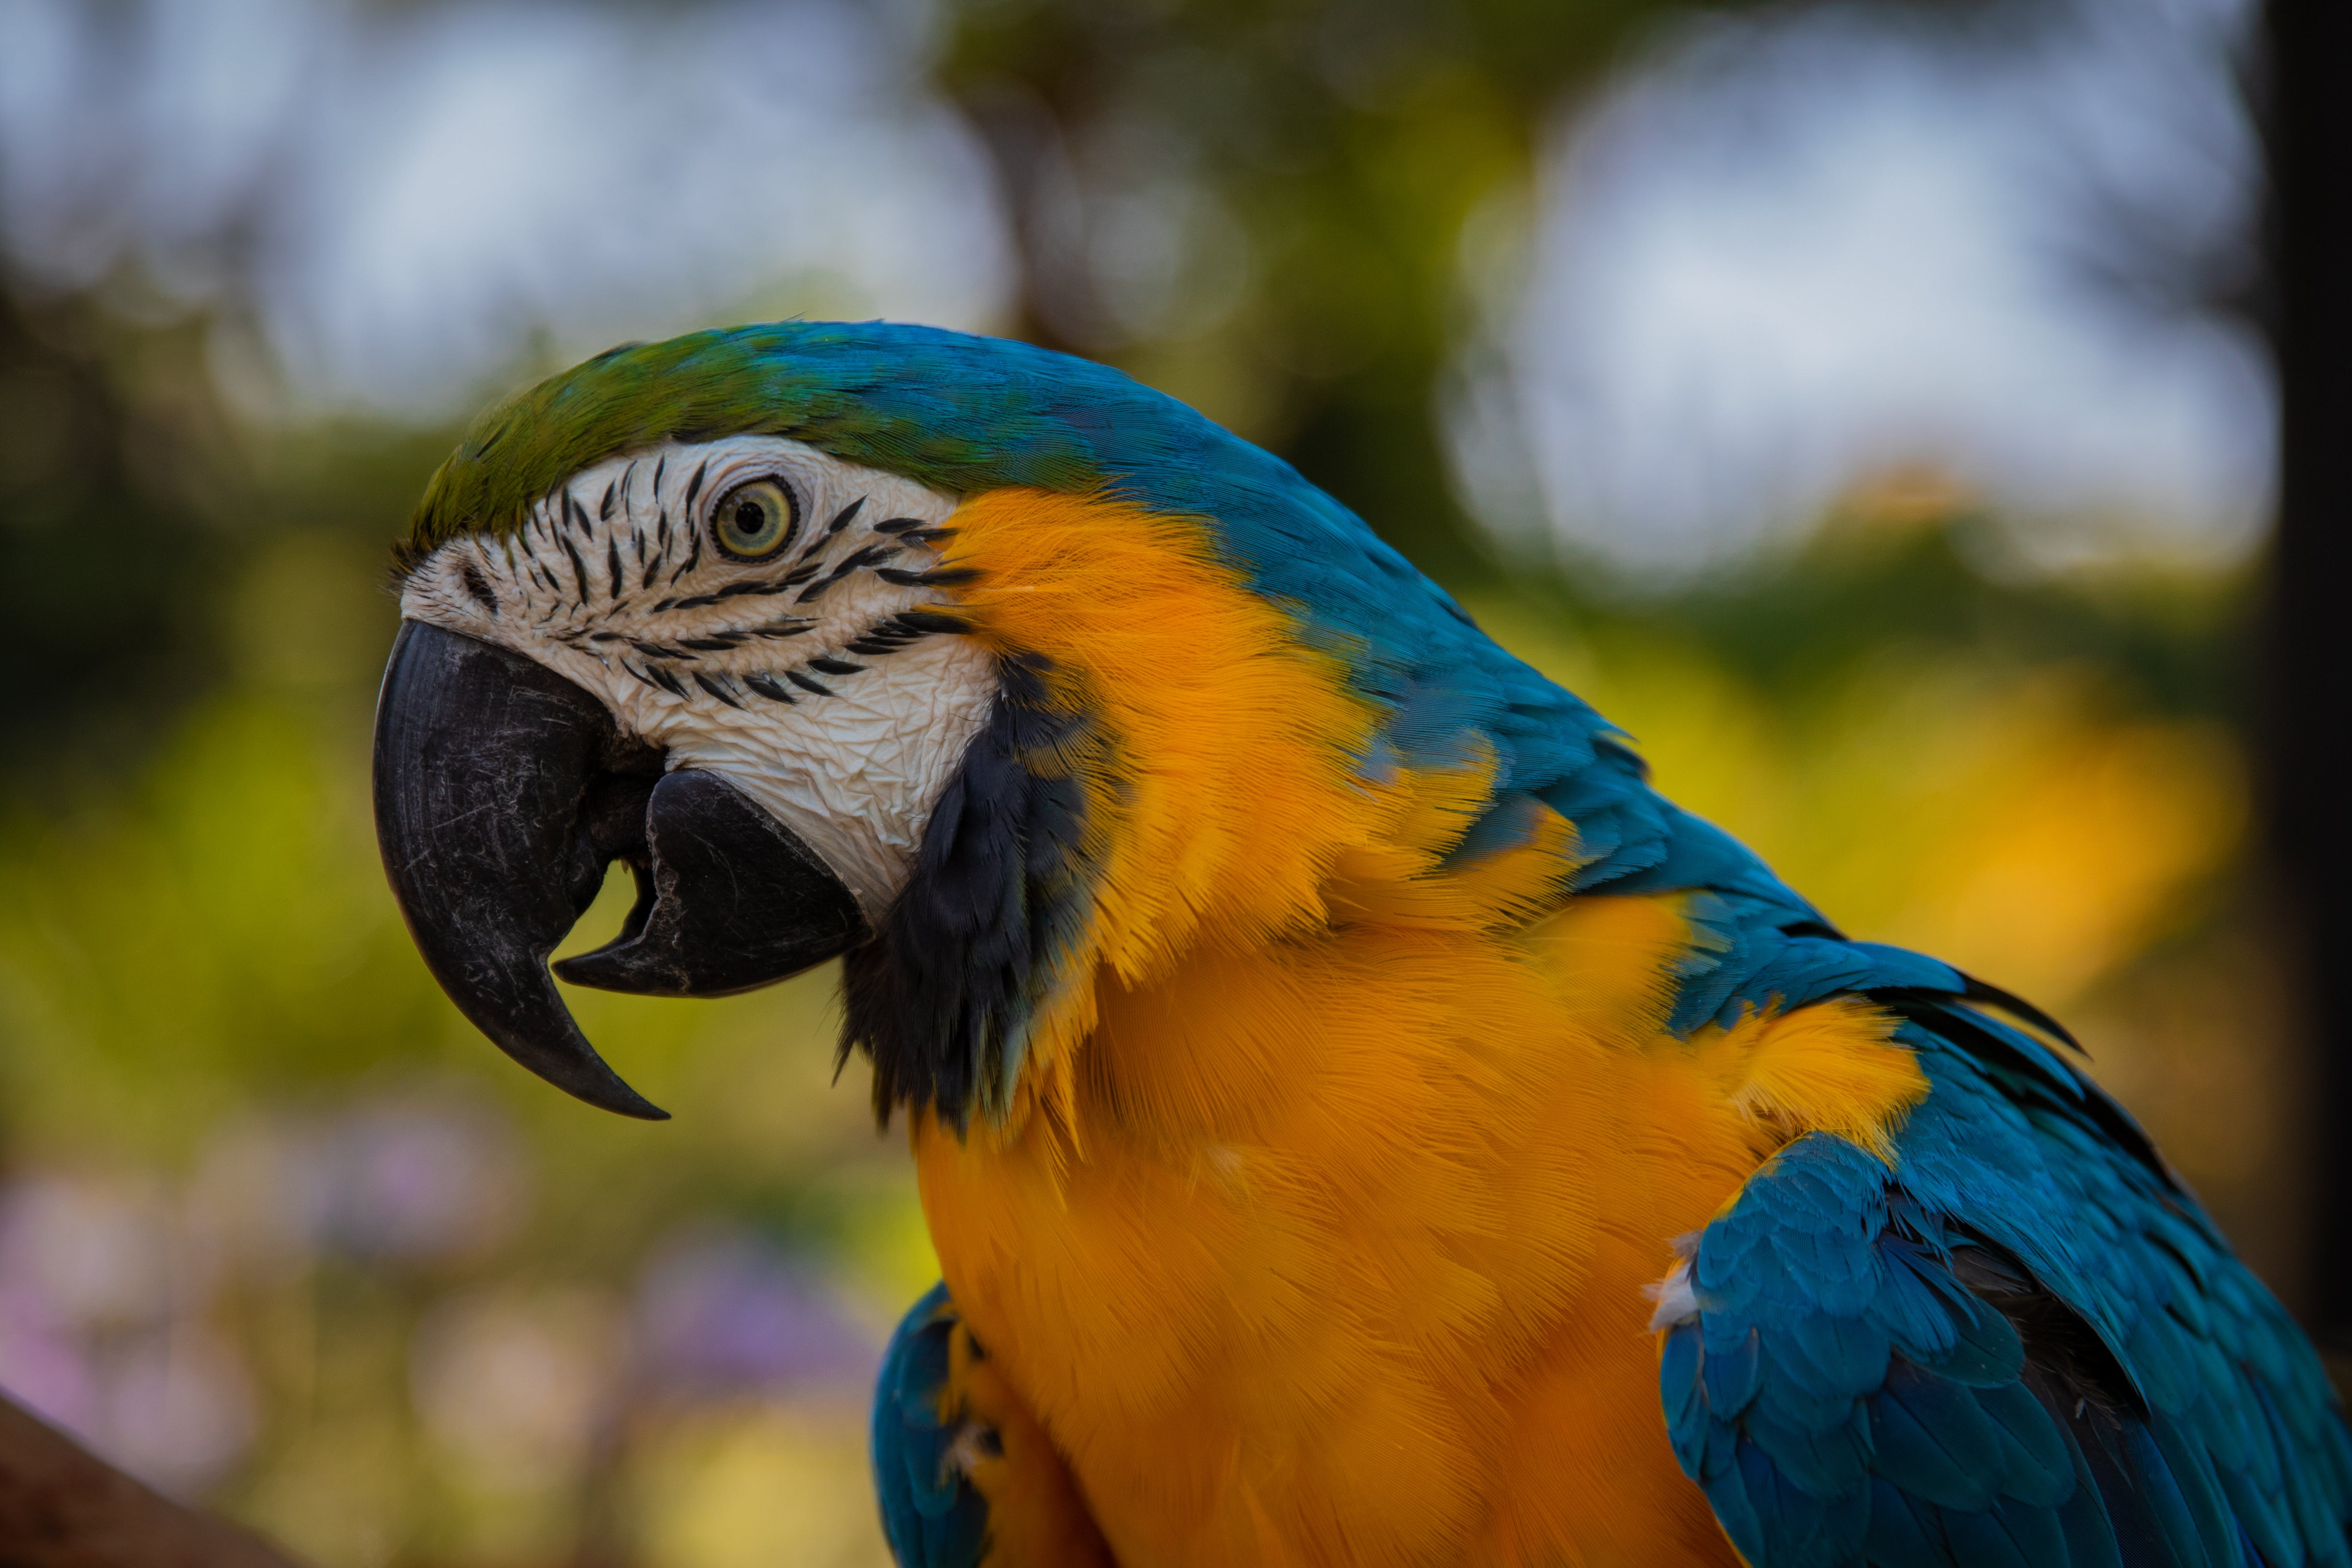 Close-Up Photo of Macaw